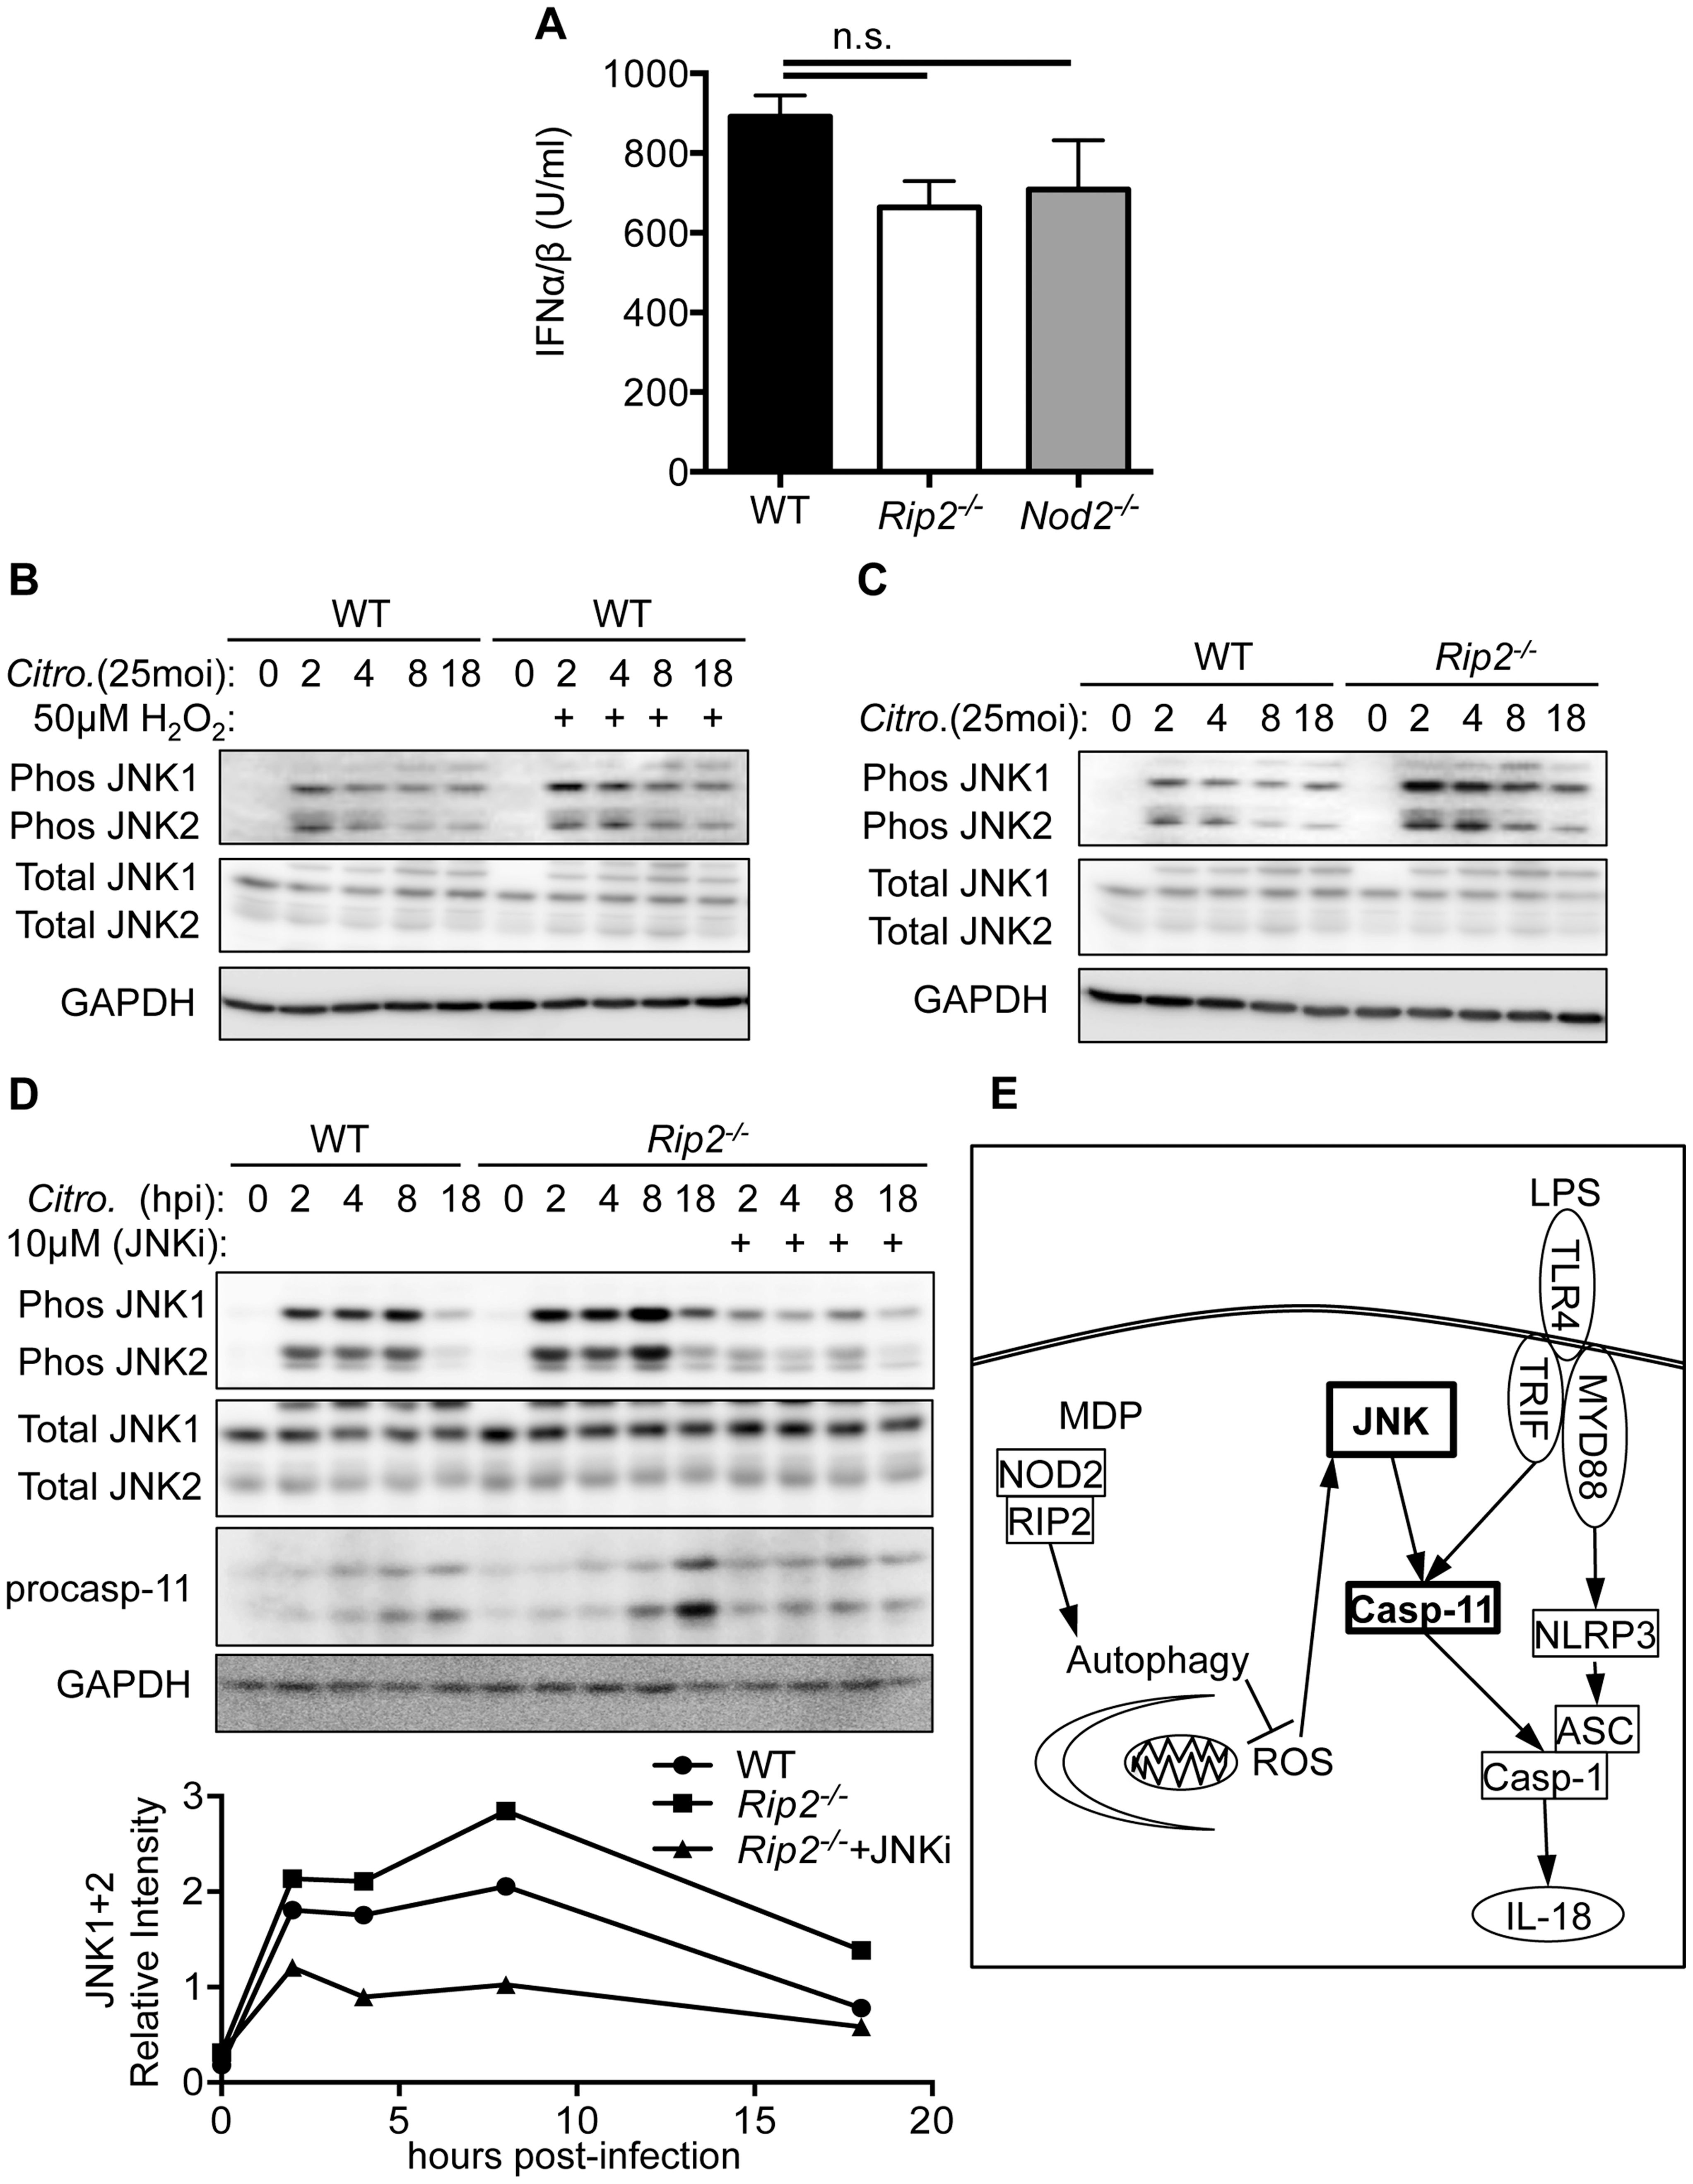 RIP2 regulates caspases-11 expression through a ROS-JNK pathway.